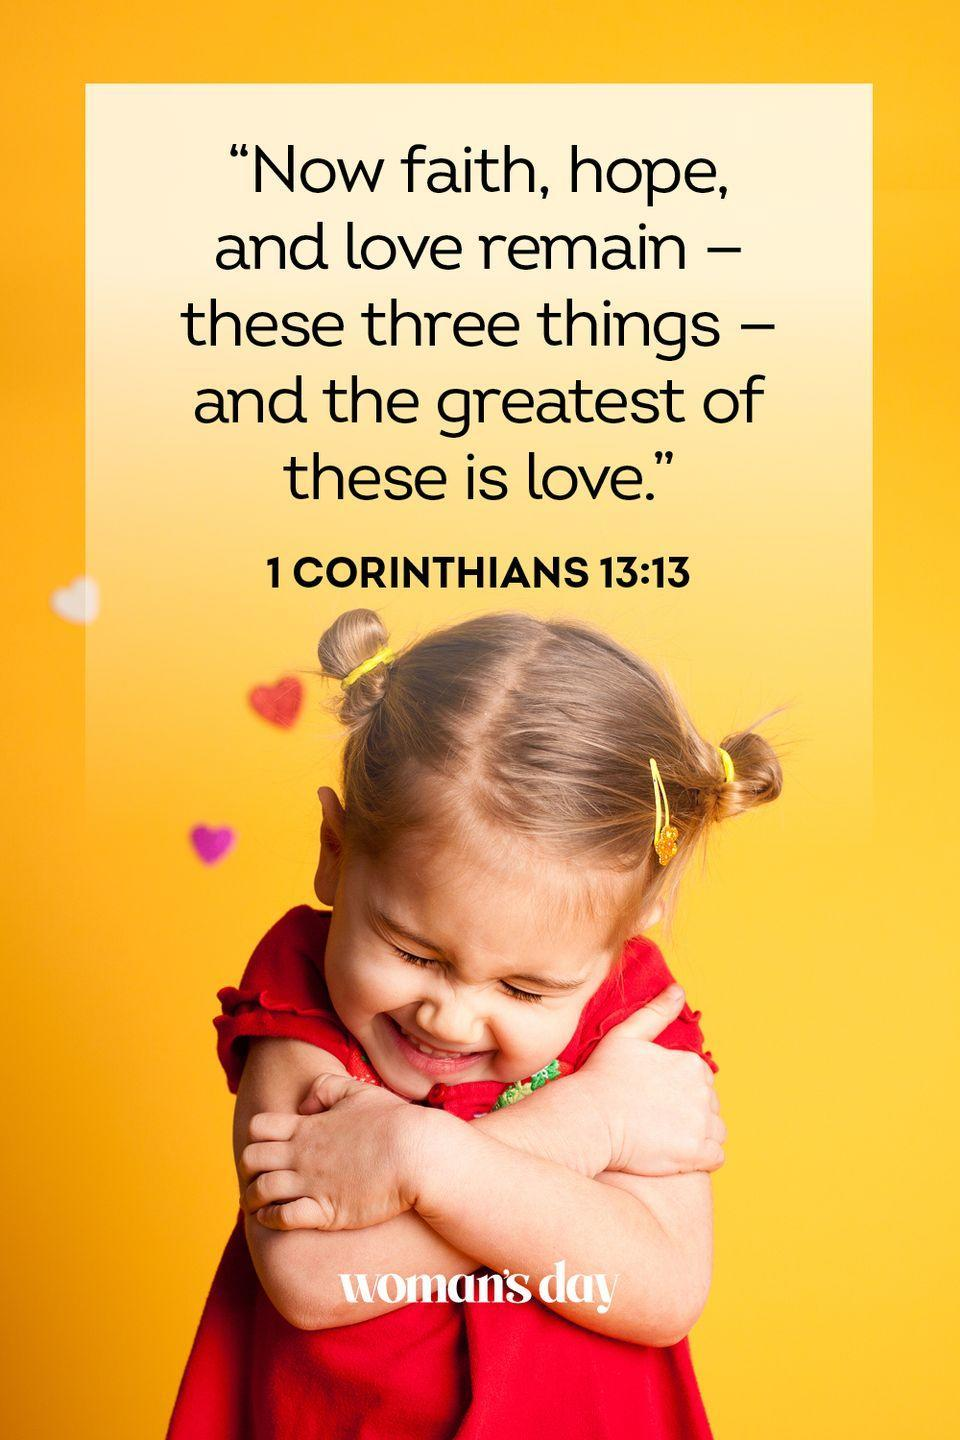 """<p>""""Now faith, hope, and love remain — these three things — and the greatest of these is love."""" — 1 Corinthians 13:13</p><p><strong>The Good News: </strong>We all must have faith, hope, and love, but love is the greatest gift of all. Where this is love, there is also faith and hope.</p>"""